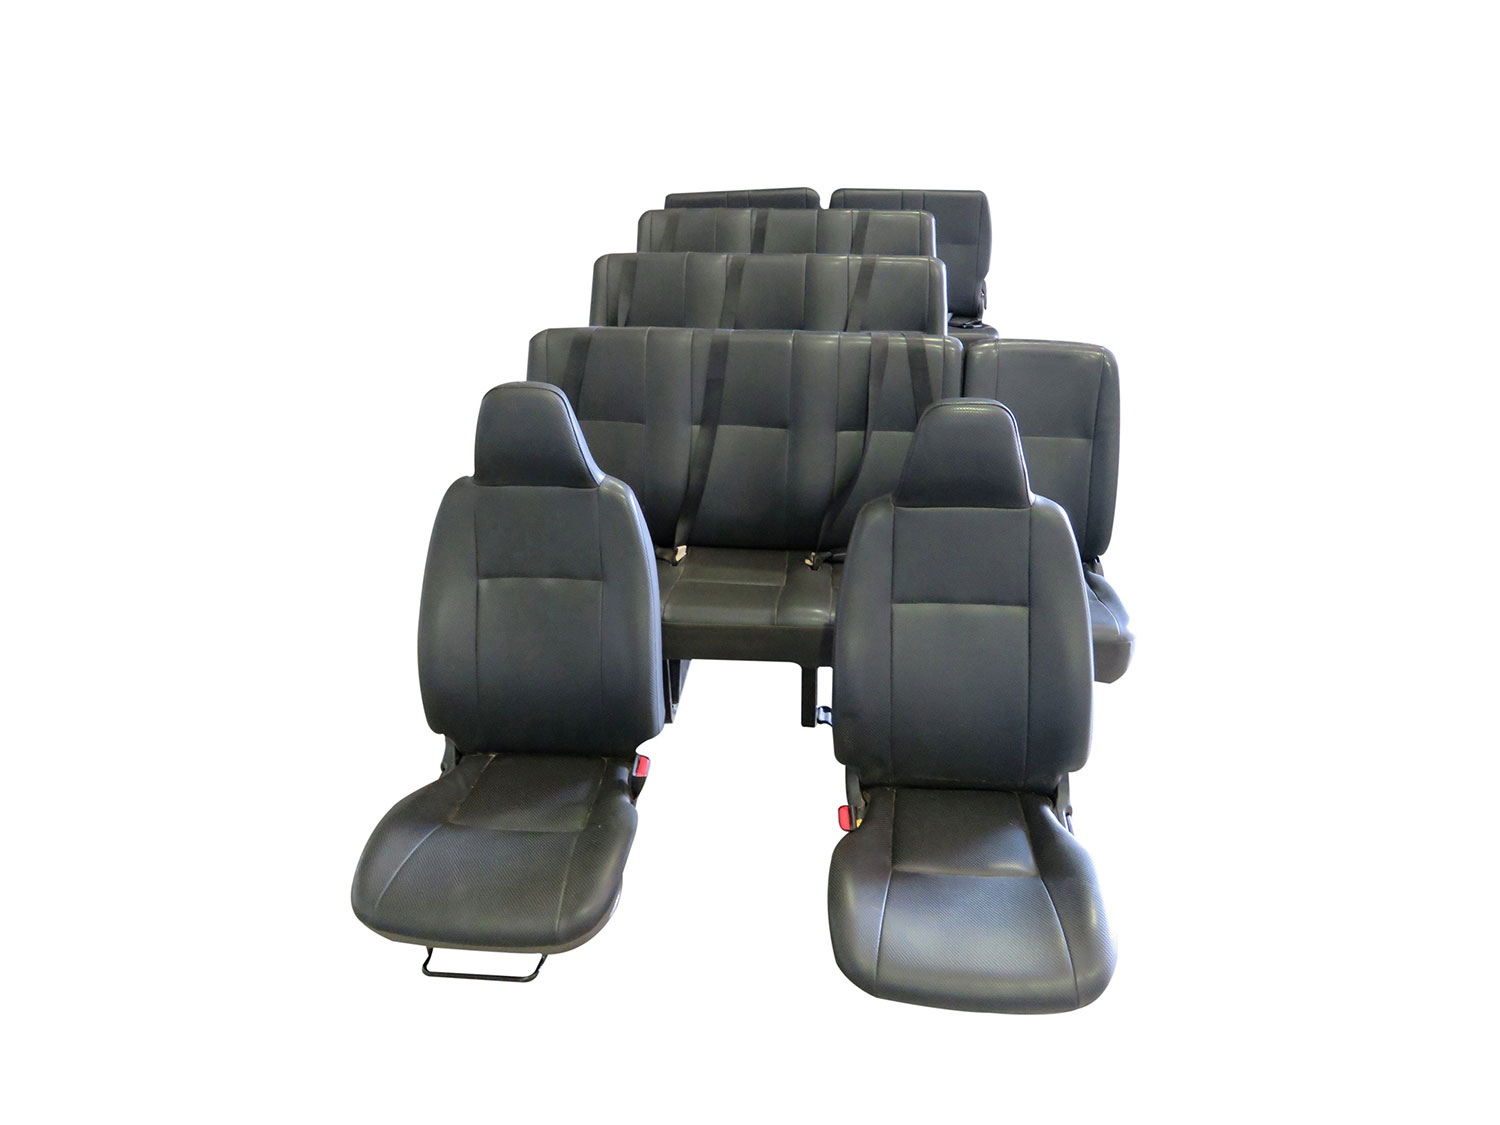 Suppliers Of Quality Used Toyota Quantum Taxi Seats | Taxi Auto Parts